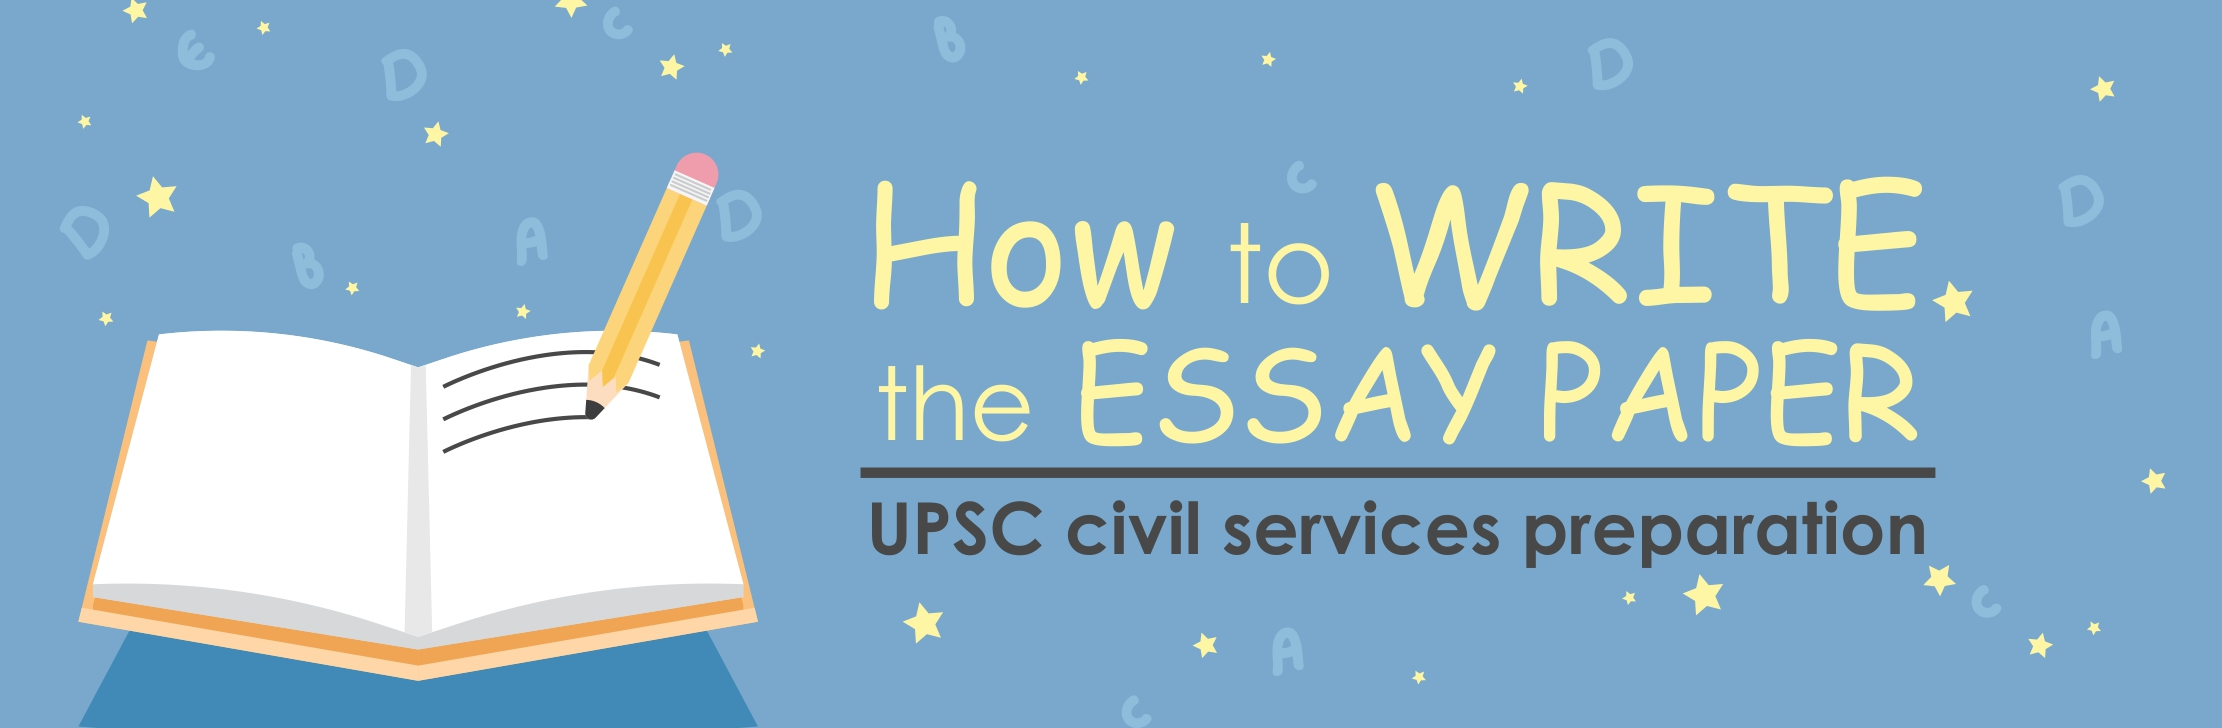 current essay for civil services Issuu is a digital publishing platform that makes it simple to publish magazines, catalogs, newspapers, books, and more online easily share your publications and get.